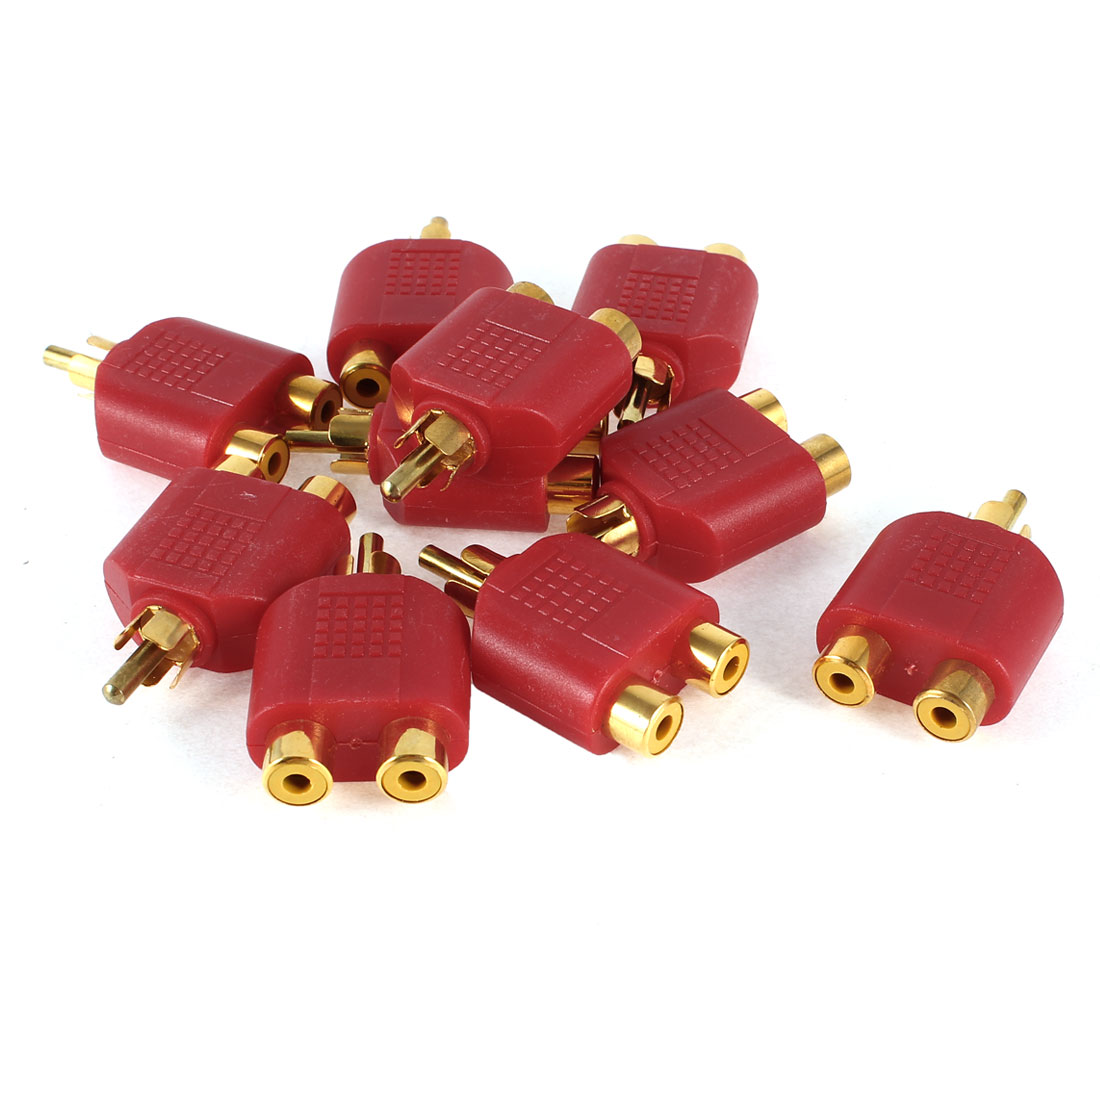 RCA Male to Dual RCA Female Stereo Audio Connector Splitter Red 10 Pcs